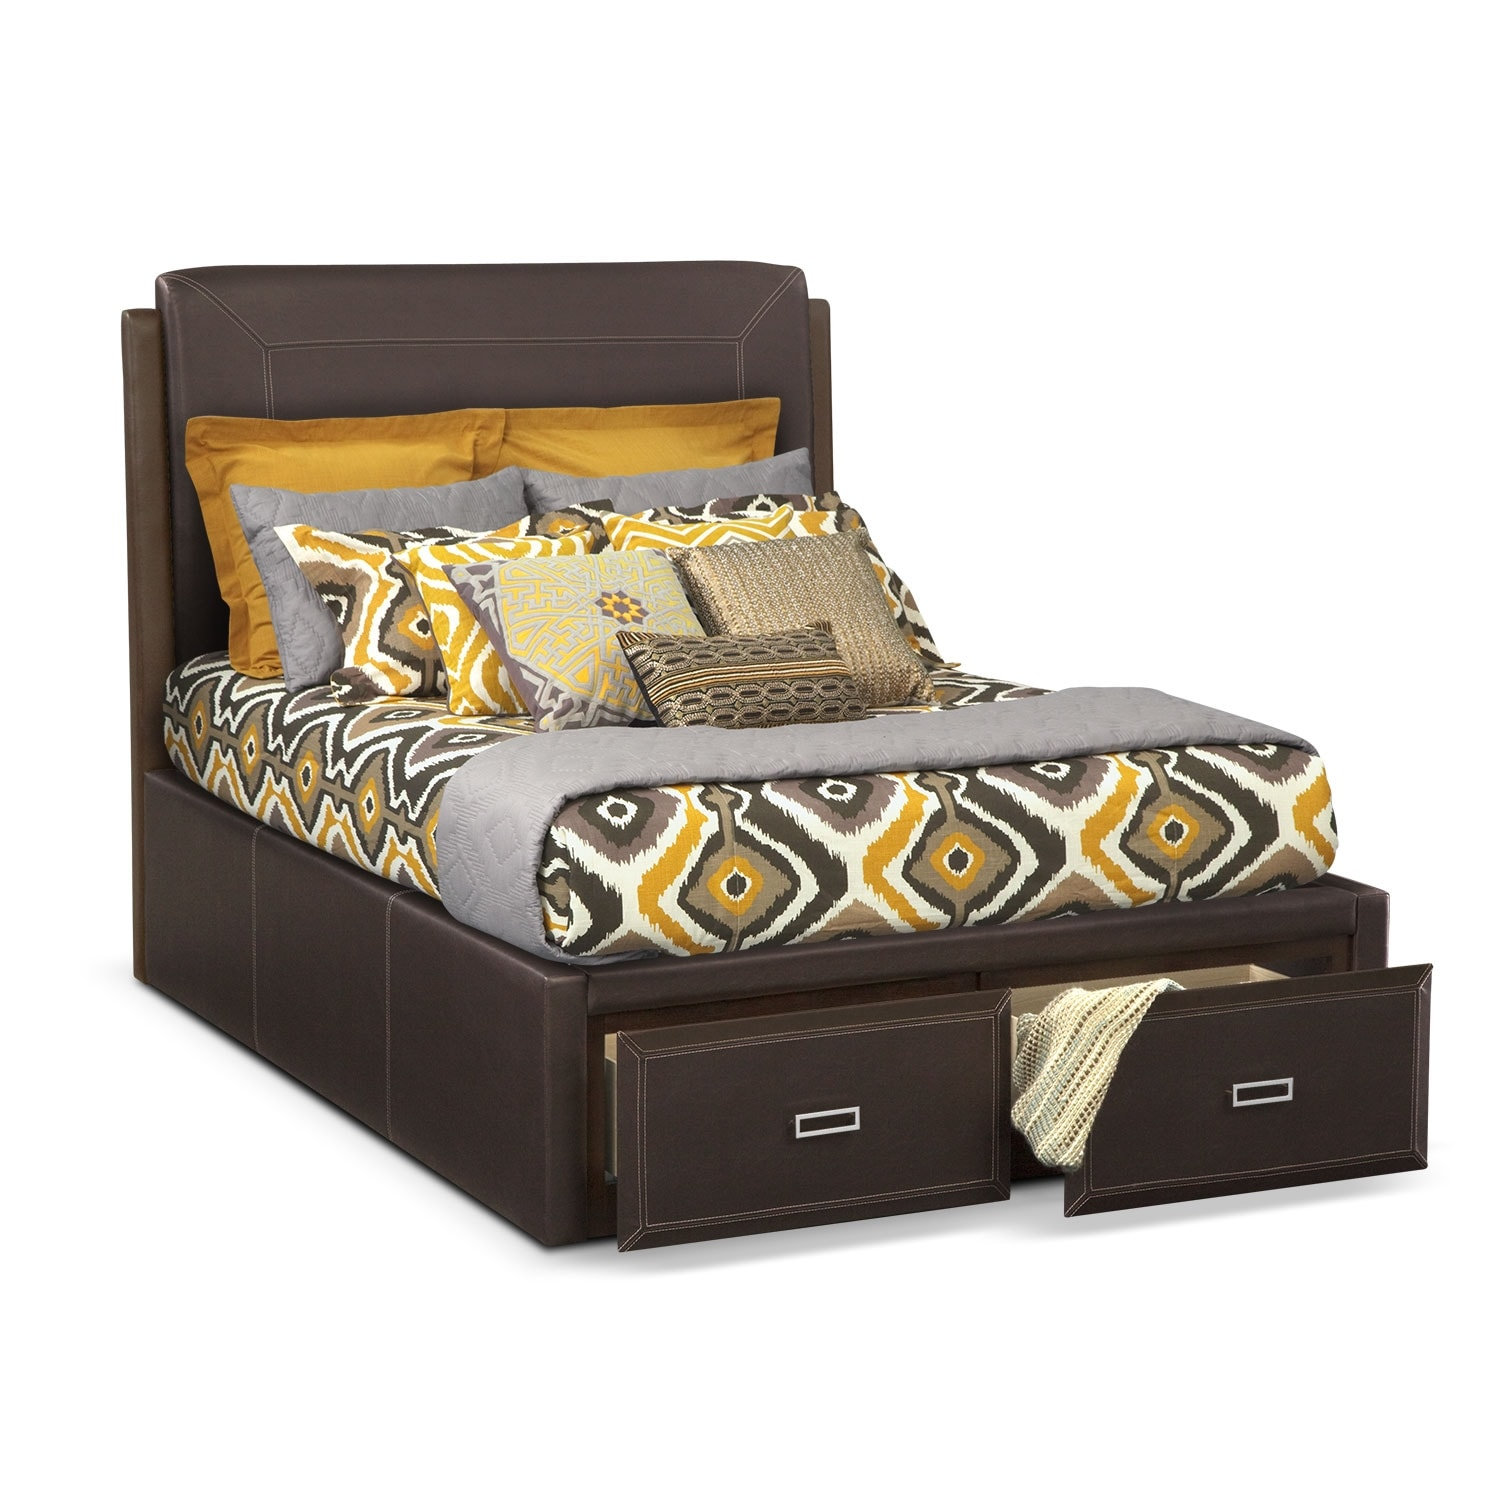 [Mason King Storage Bed]